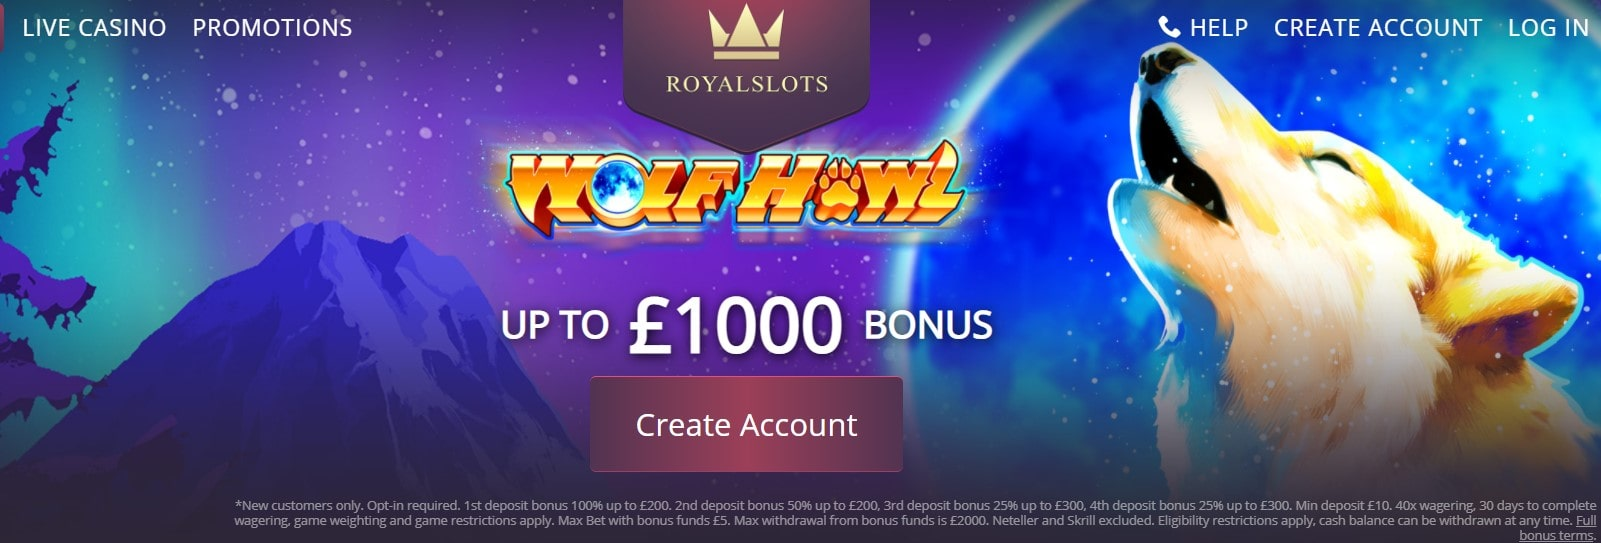 royal slots casino promotions